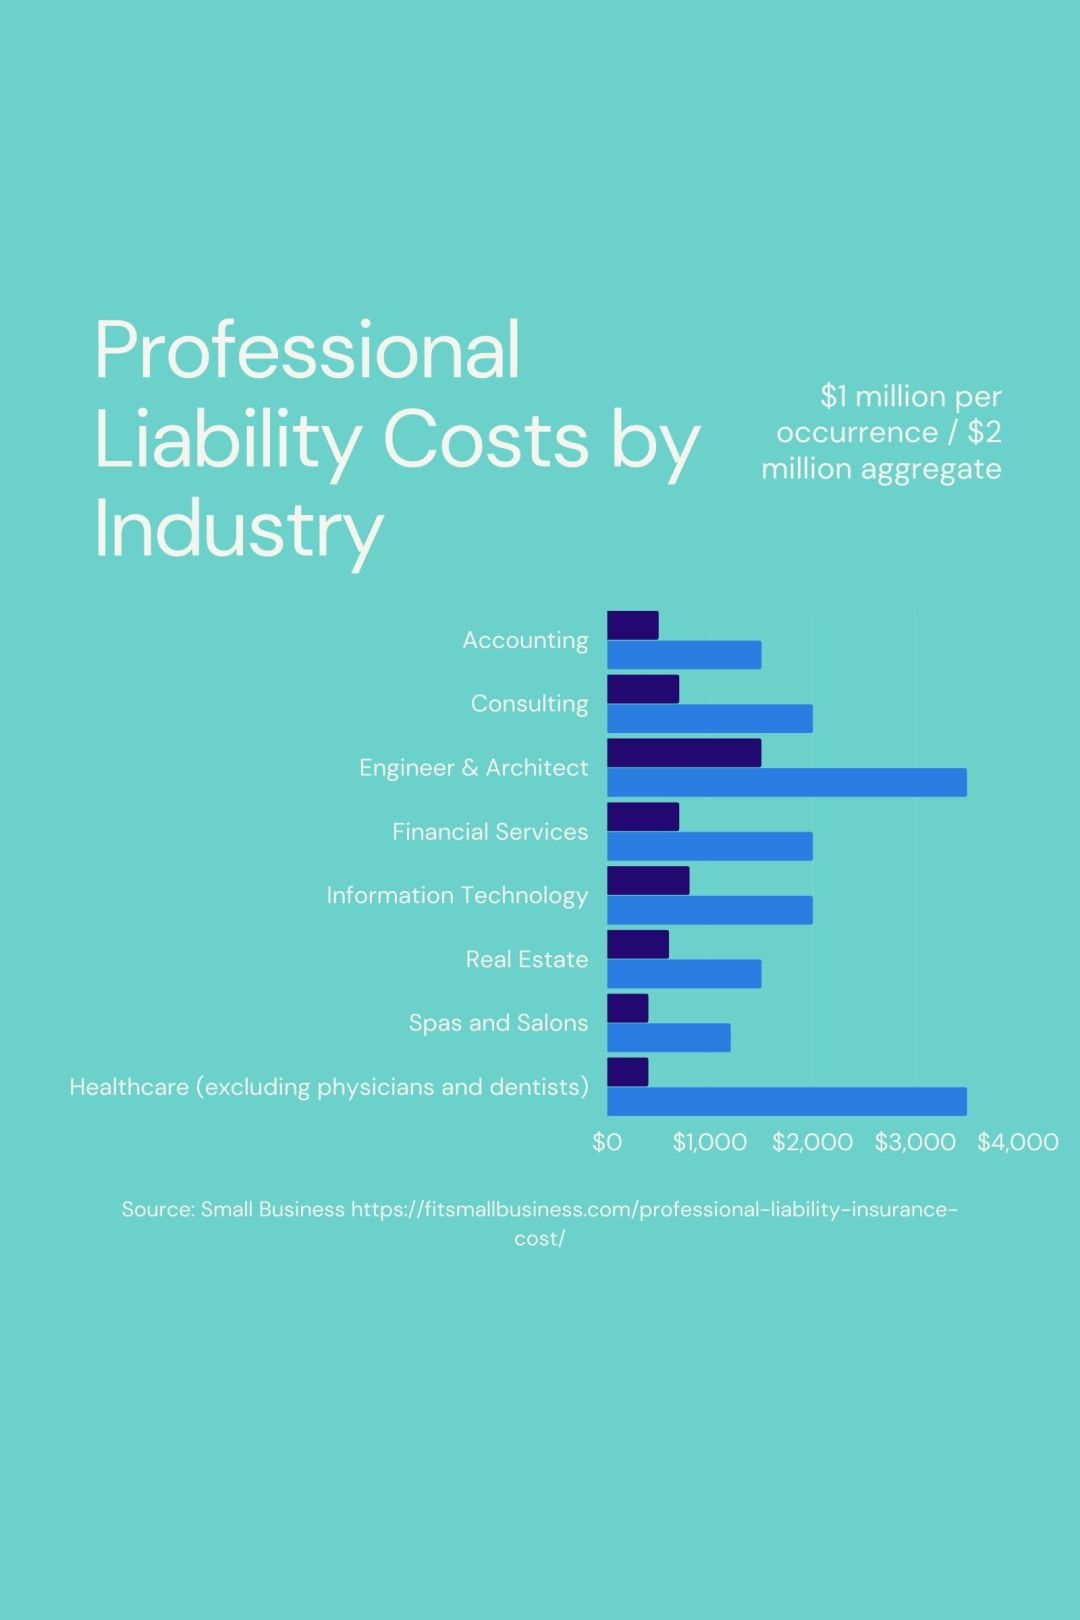 Professional Liability Costs By Industry